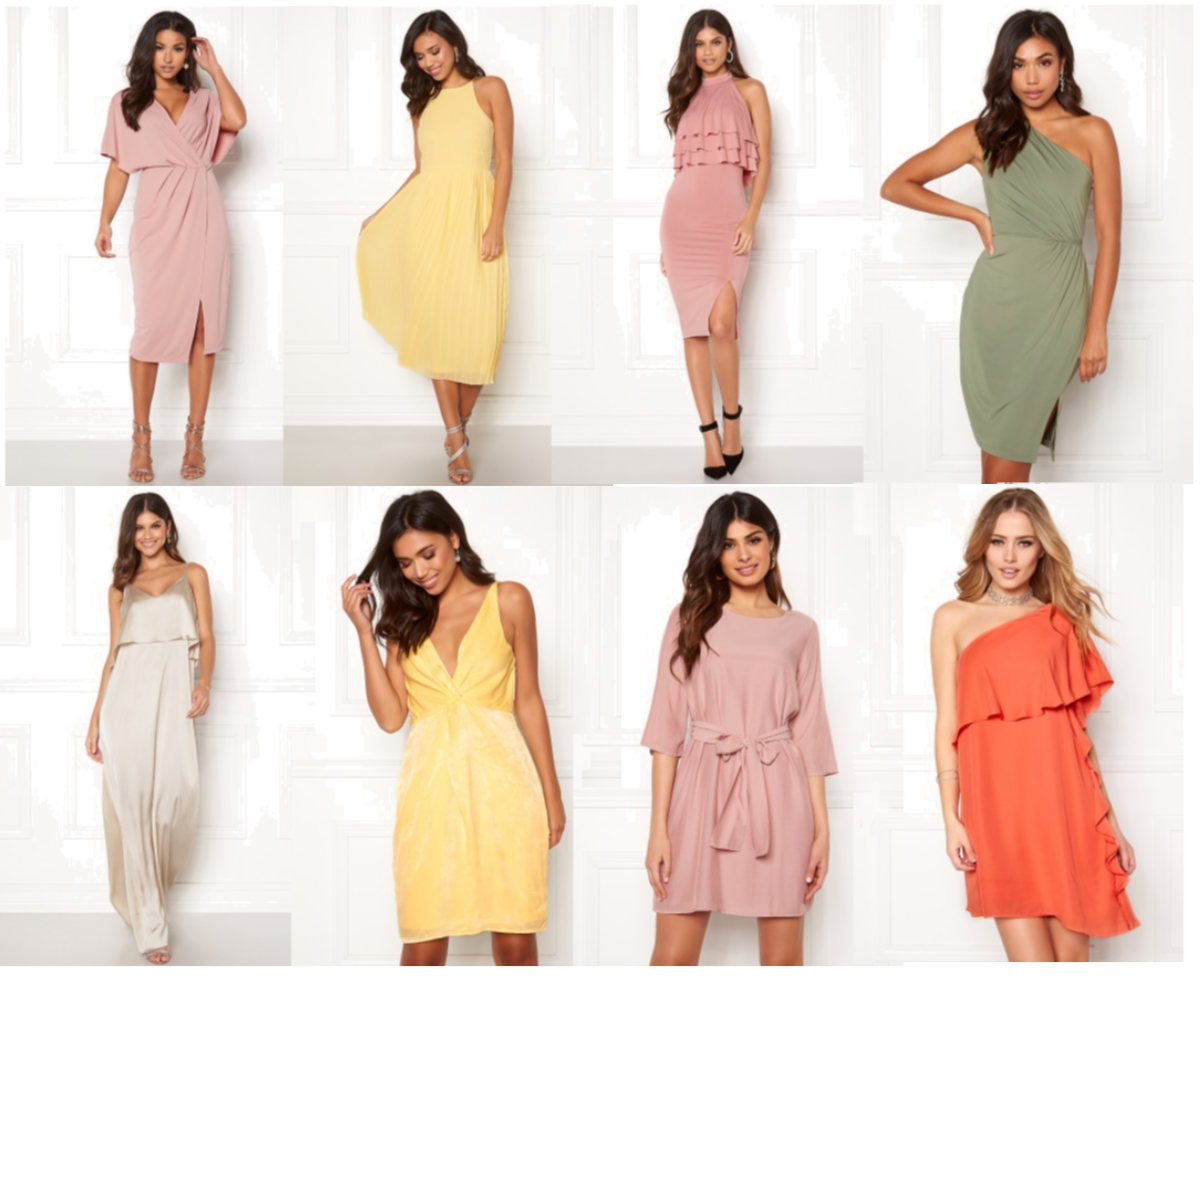 f3c7d8254bc5 Make Way Selena dress Dusty pink 40 | BUBBLEROOM Poppy dress Light yellow  34 | BUBBLEROOM Capri flounce dress Champagne 34 | BUBBLEROOM Venice Love  Dress ...